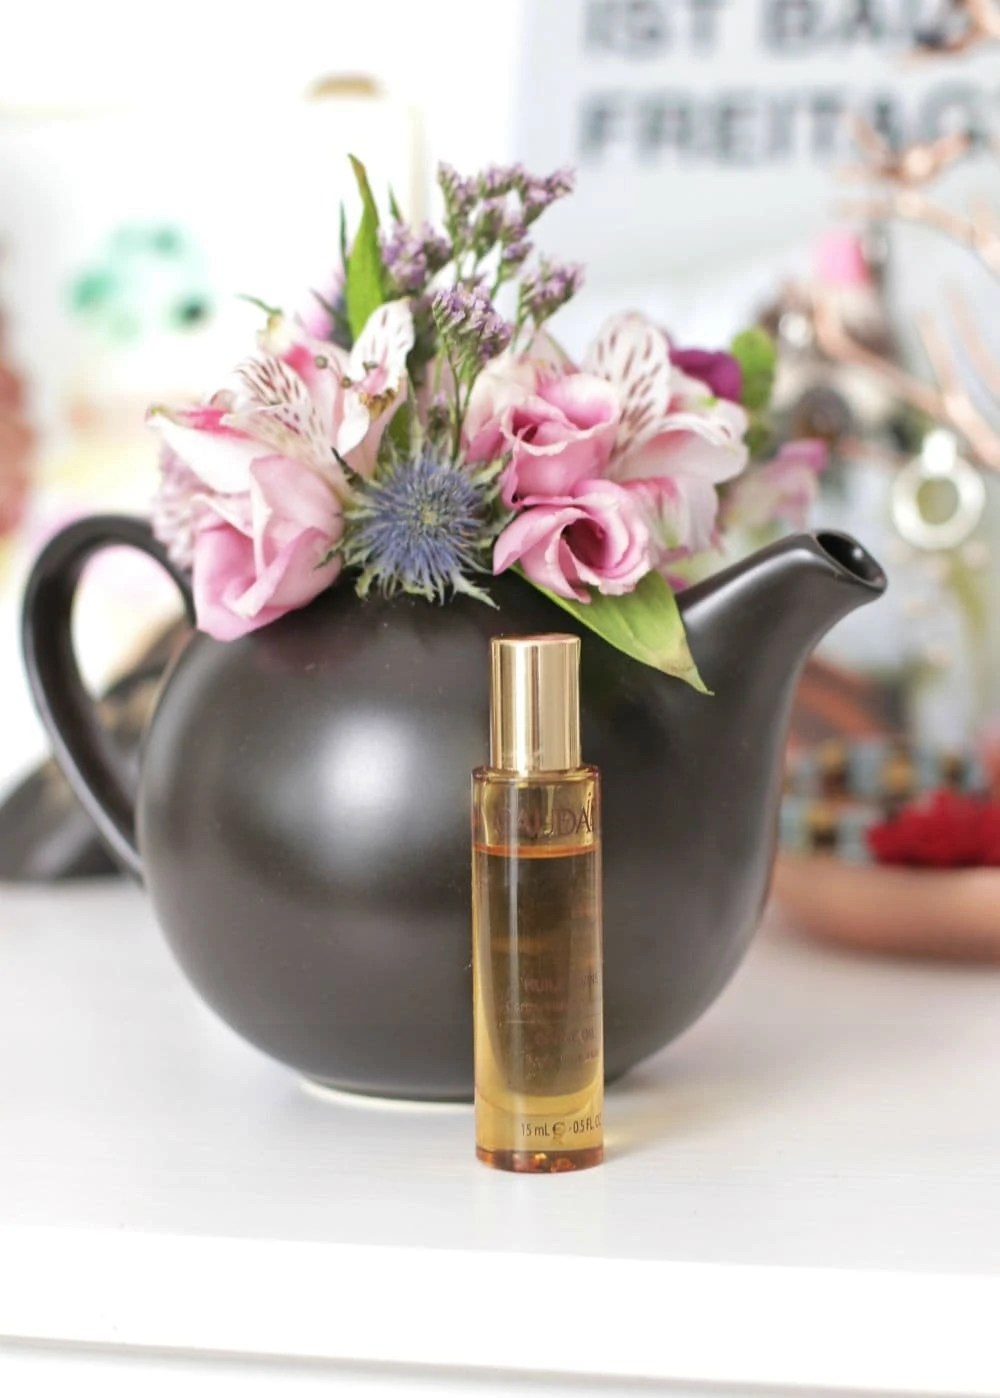 5 Interesting Facts About Your Perfumes